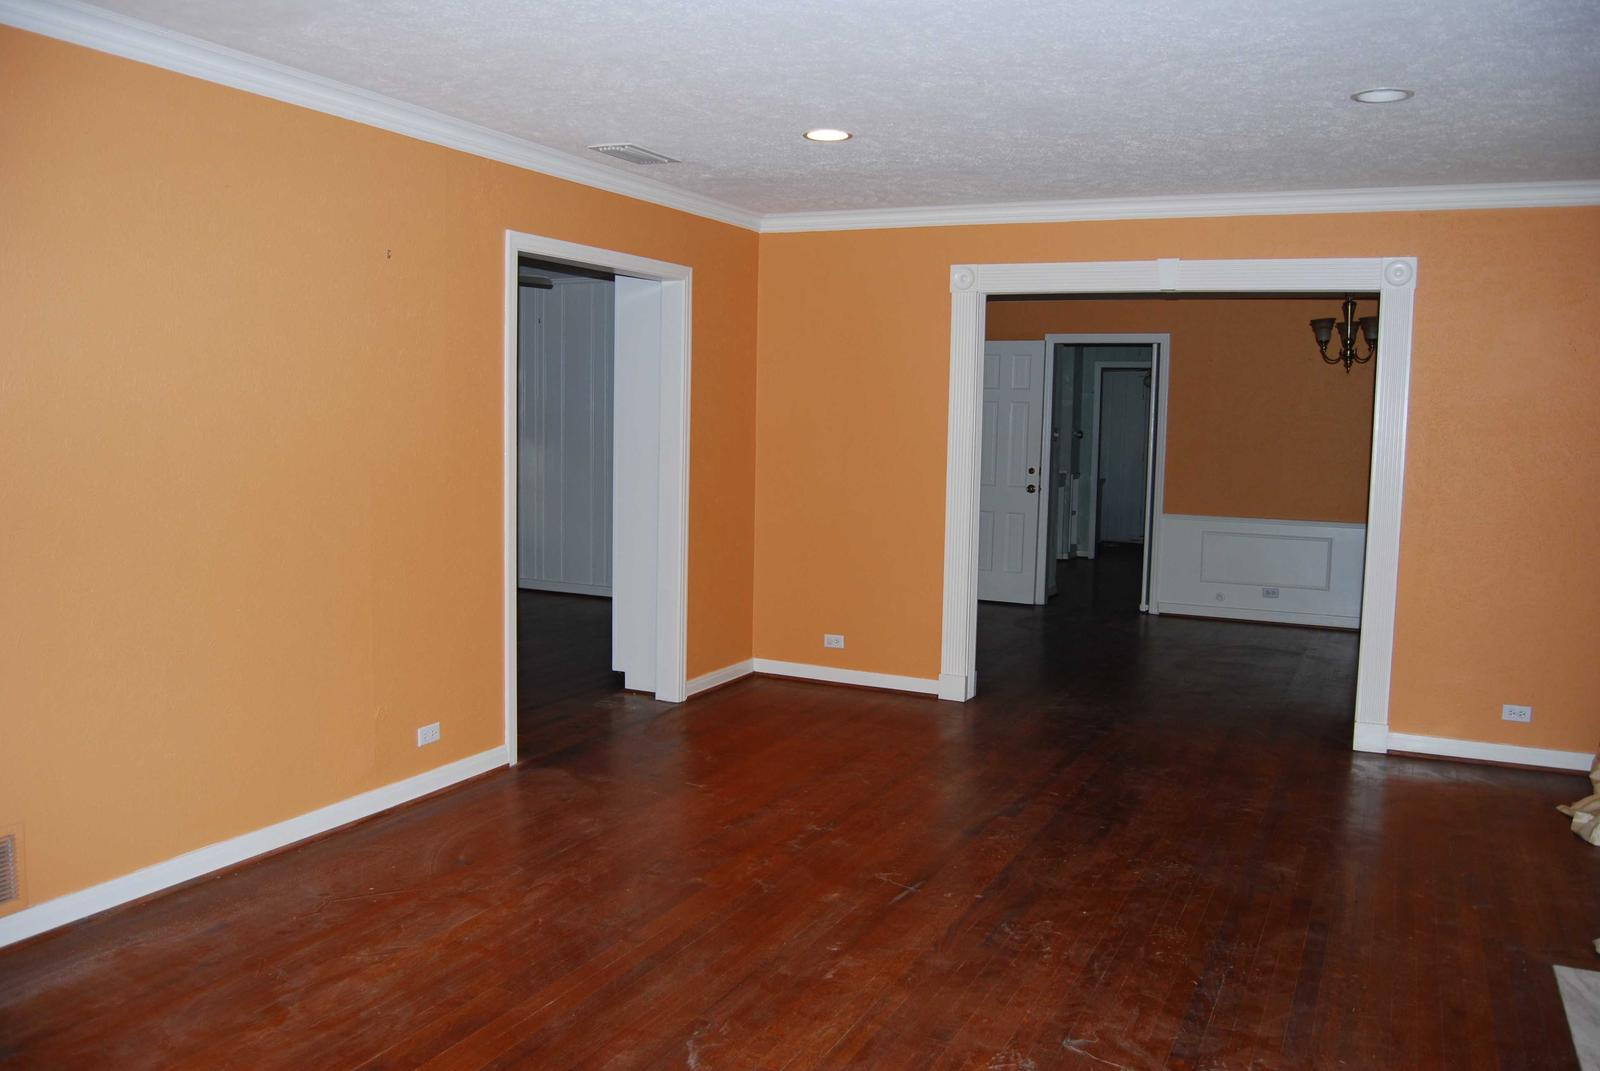 Look At Pics And Help Suggest Wall Color.